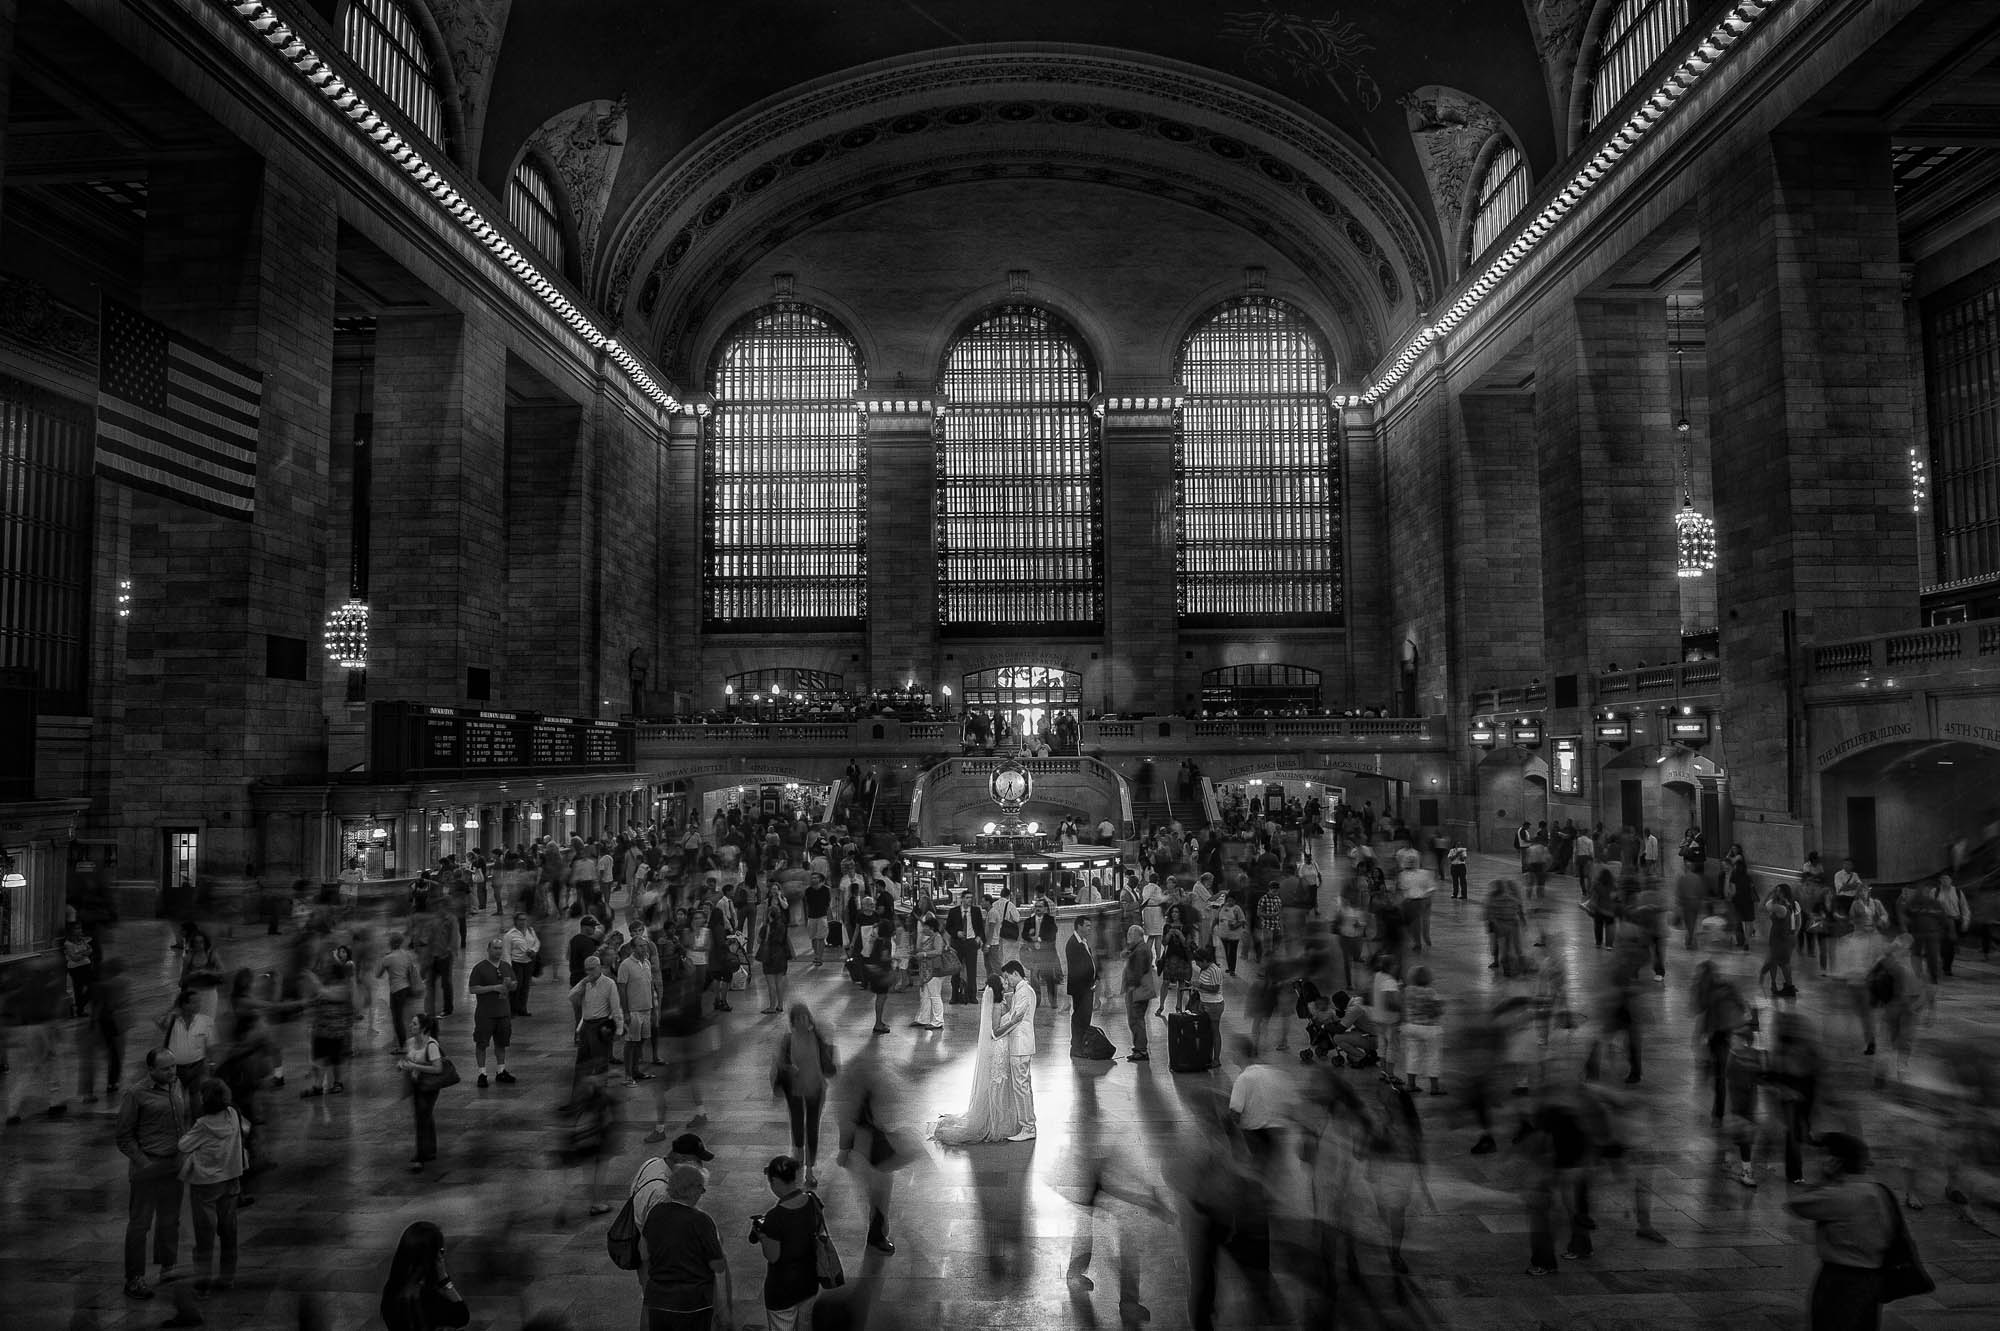 Long exposure of couple standing in Grand Central Station - photo by CM Leung